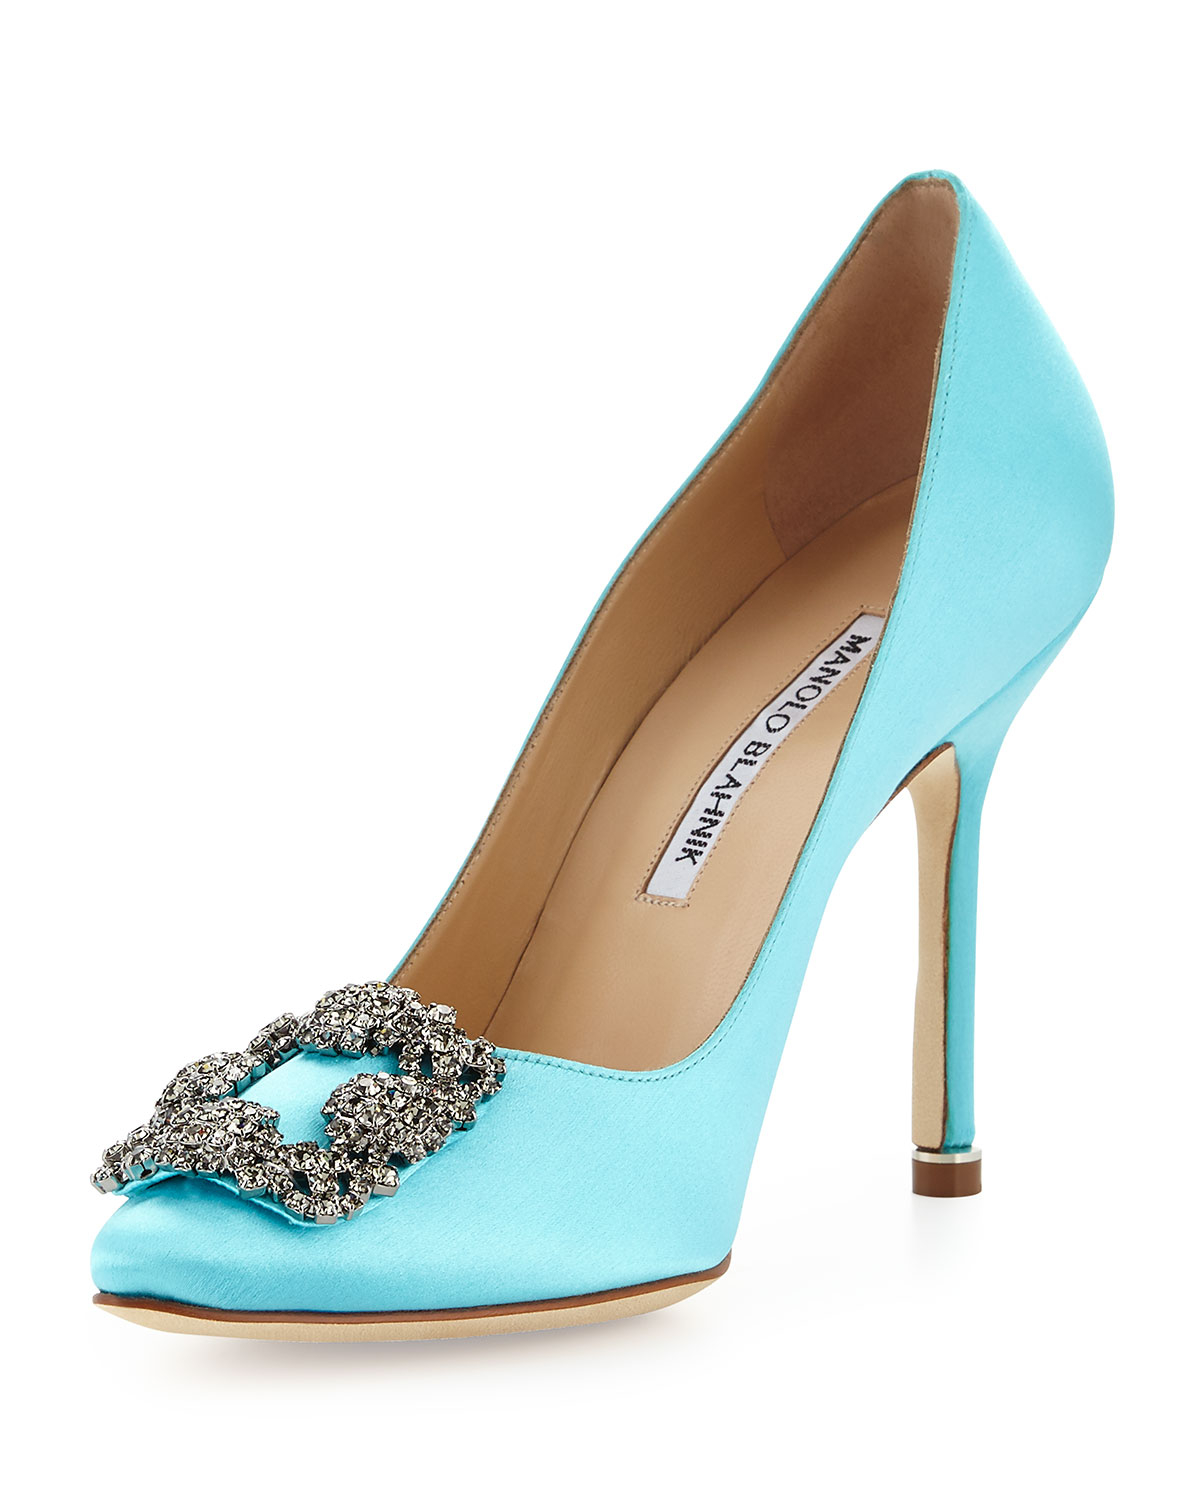 Lyst manolo blahnik hangisi satin pump in blue for Shoes by manolo blahnik